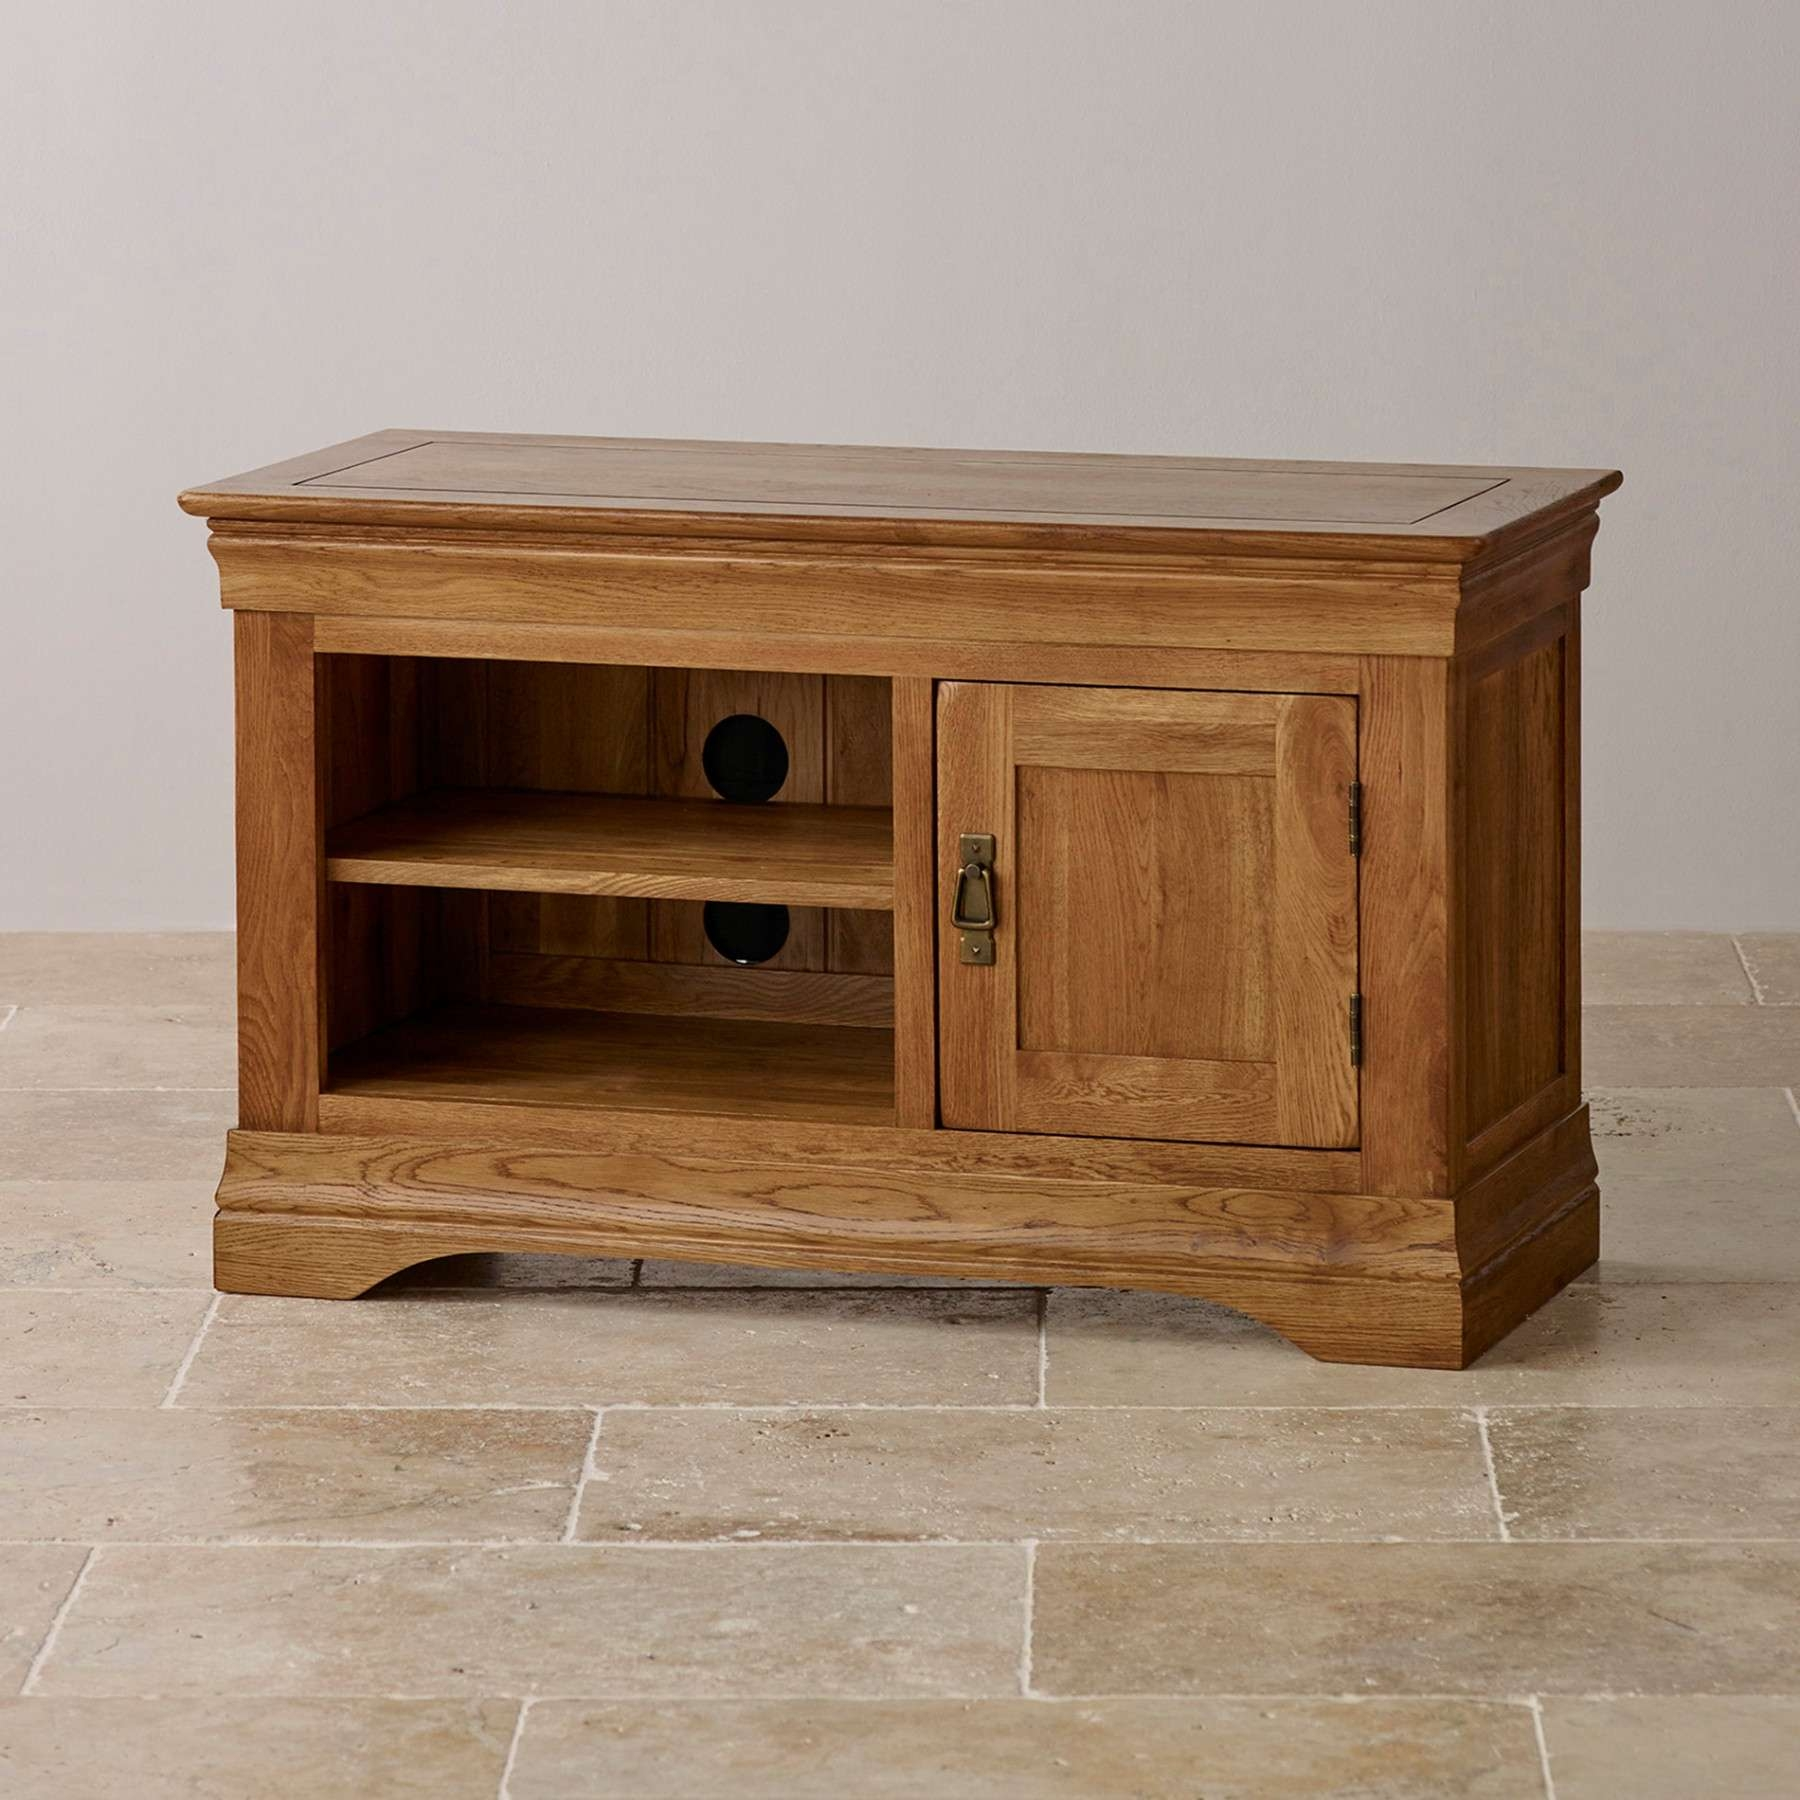 French Farmhouse Rustic Solid Oak Widescreen Tv Stand Oak Regarding Hard Wood Tv Stands (View 8 of 15)